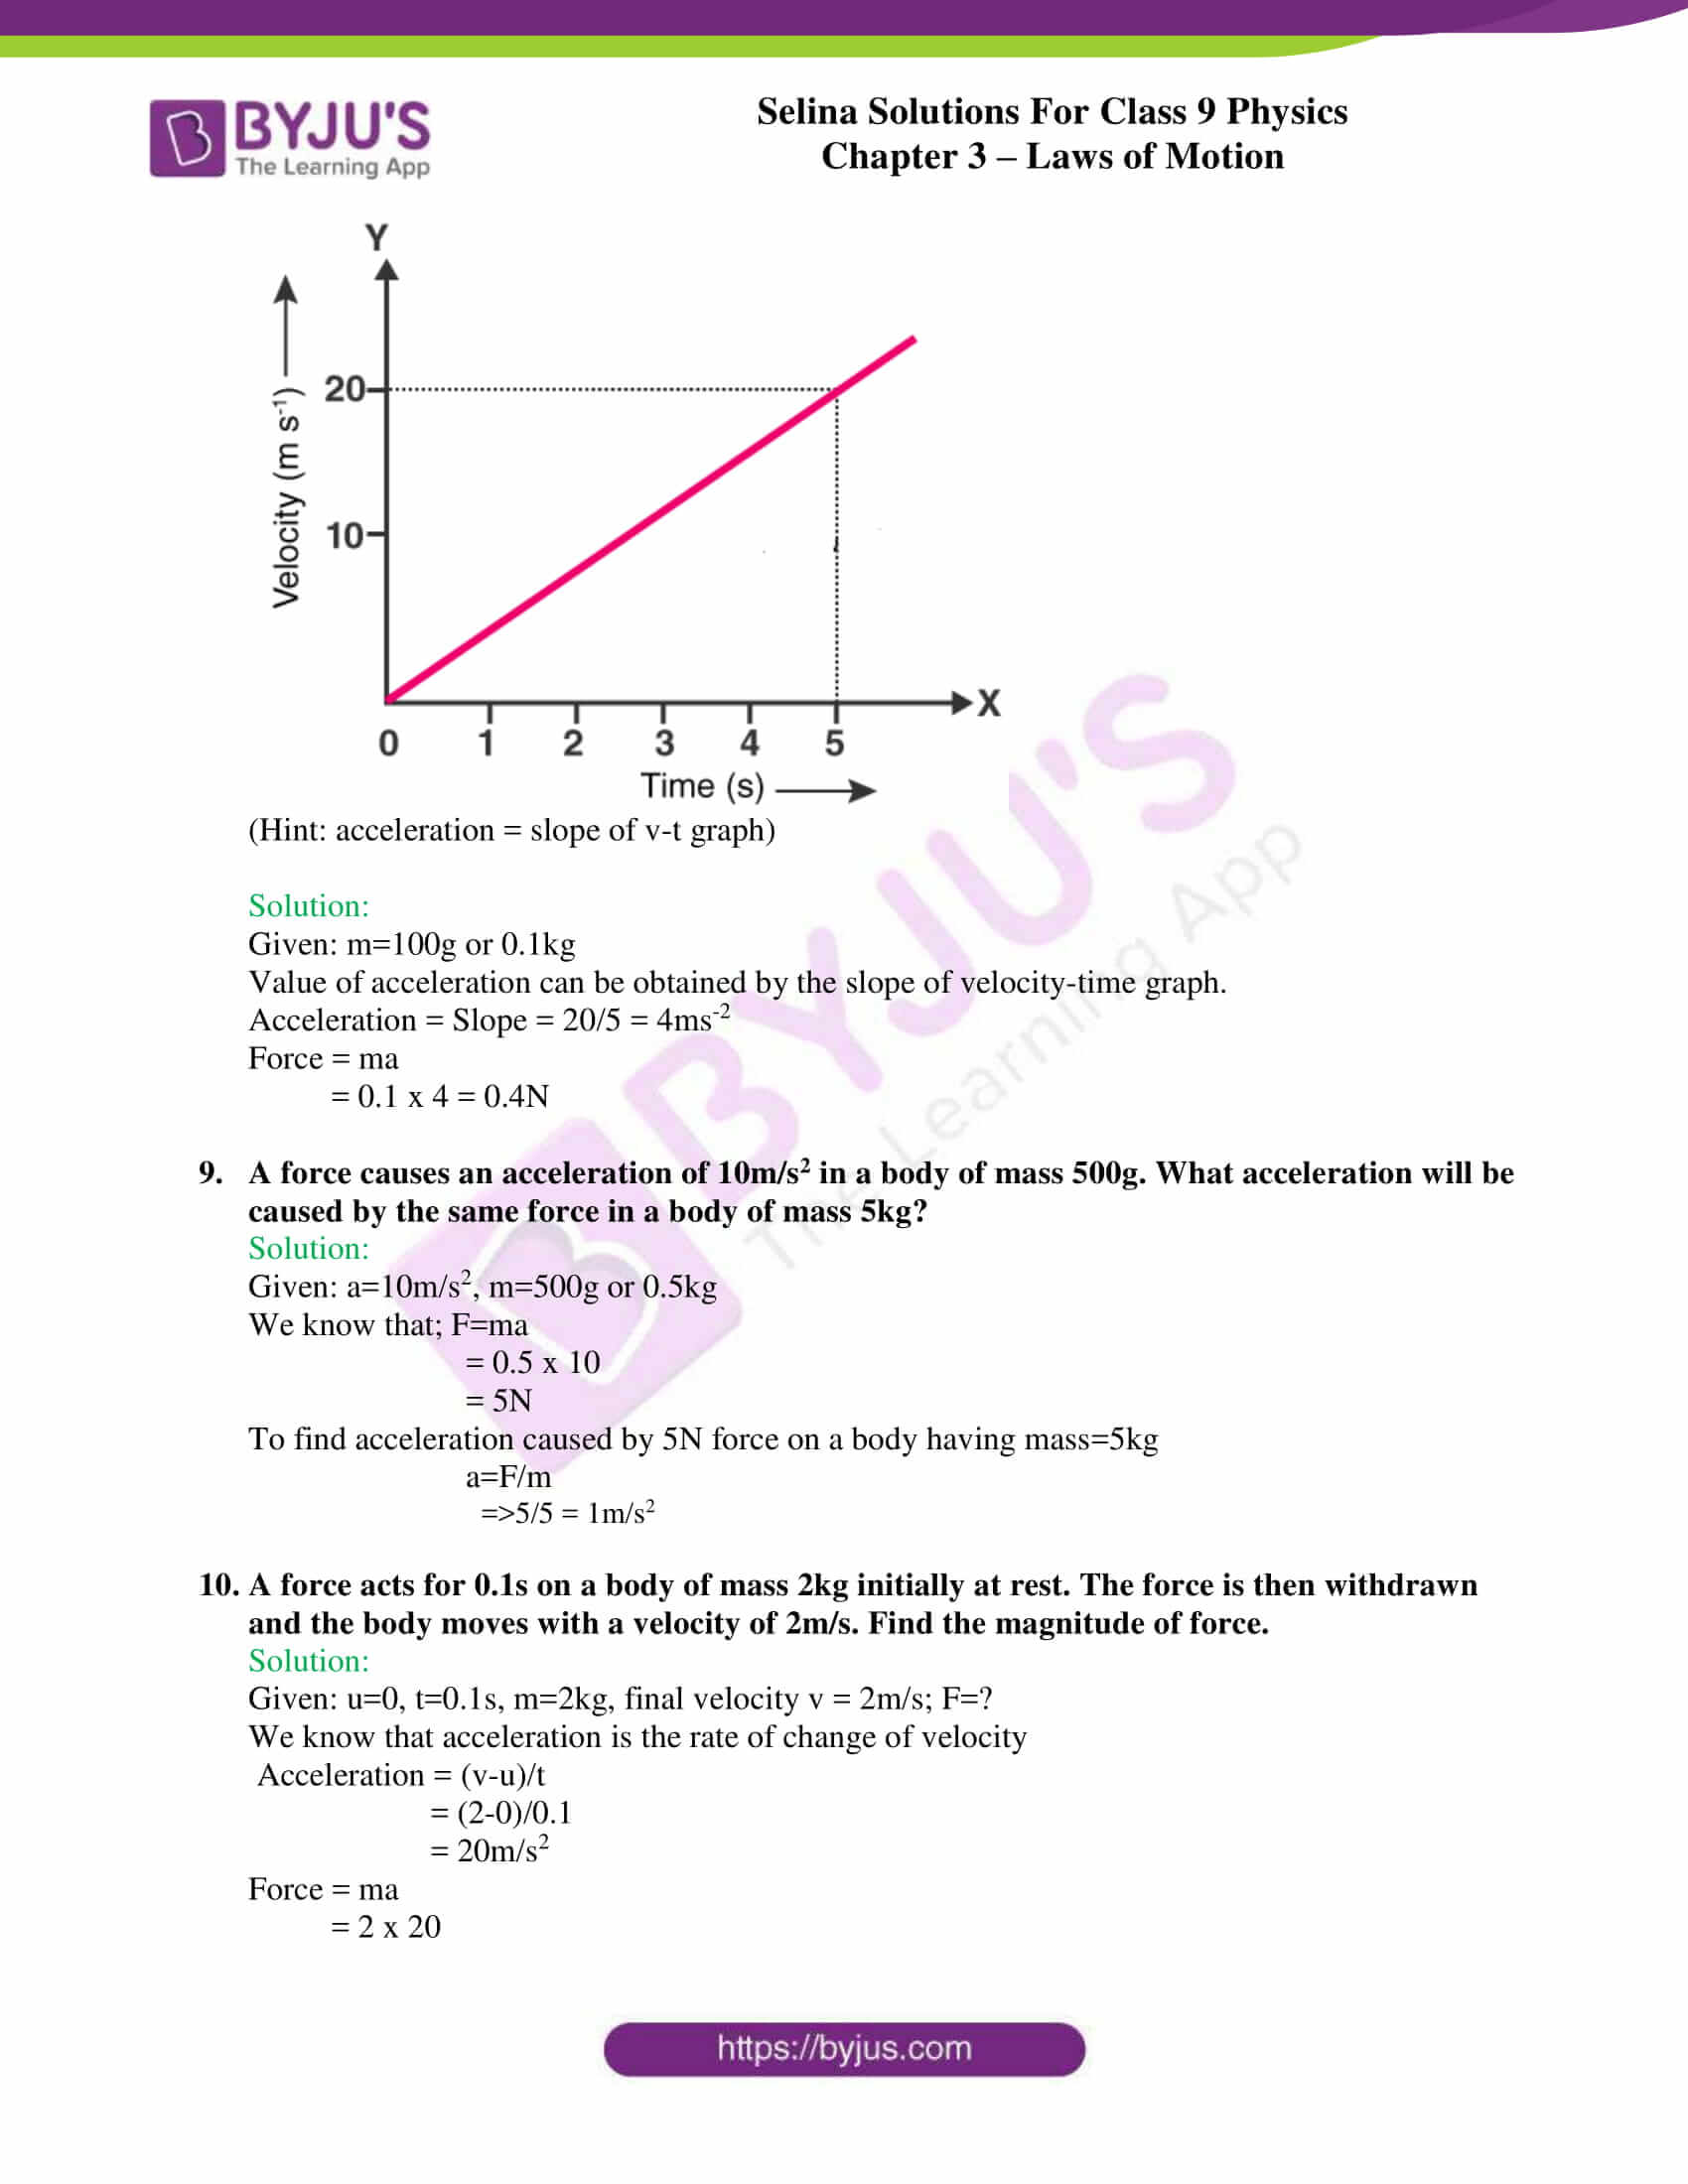 selina solutions class 9 physics chapter 3 Laws of Motion part 18